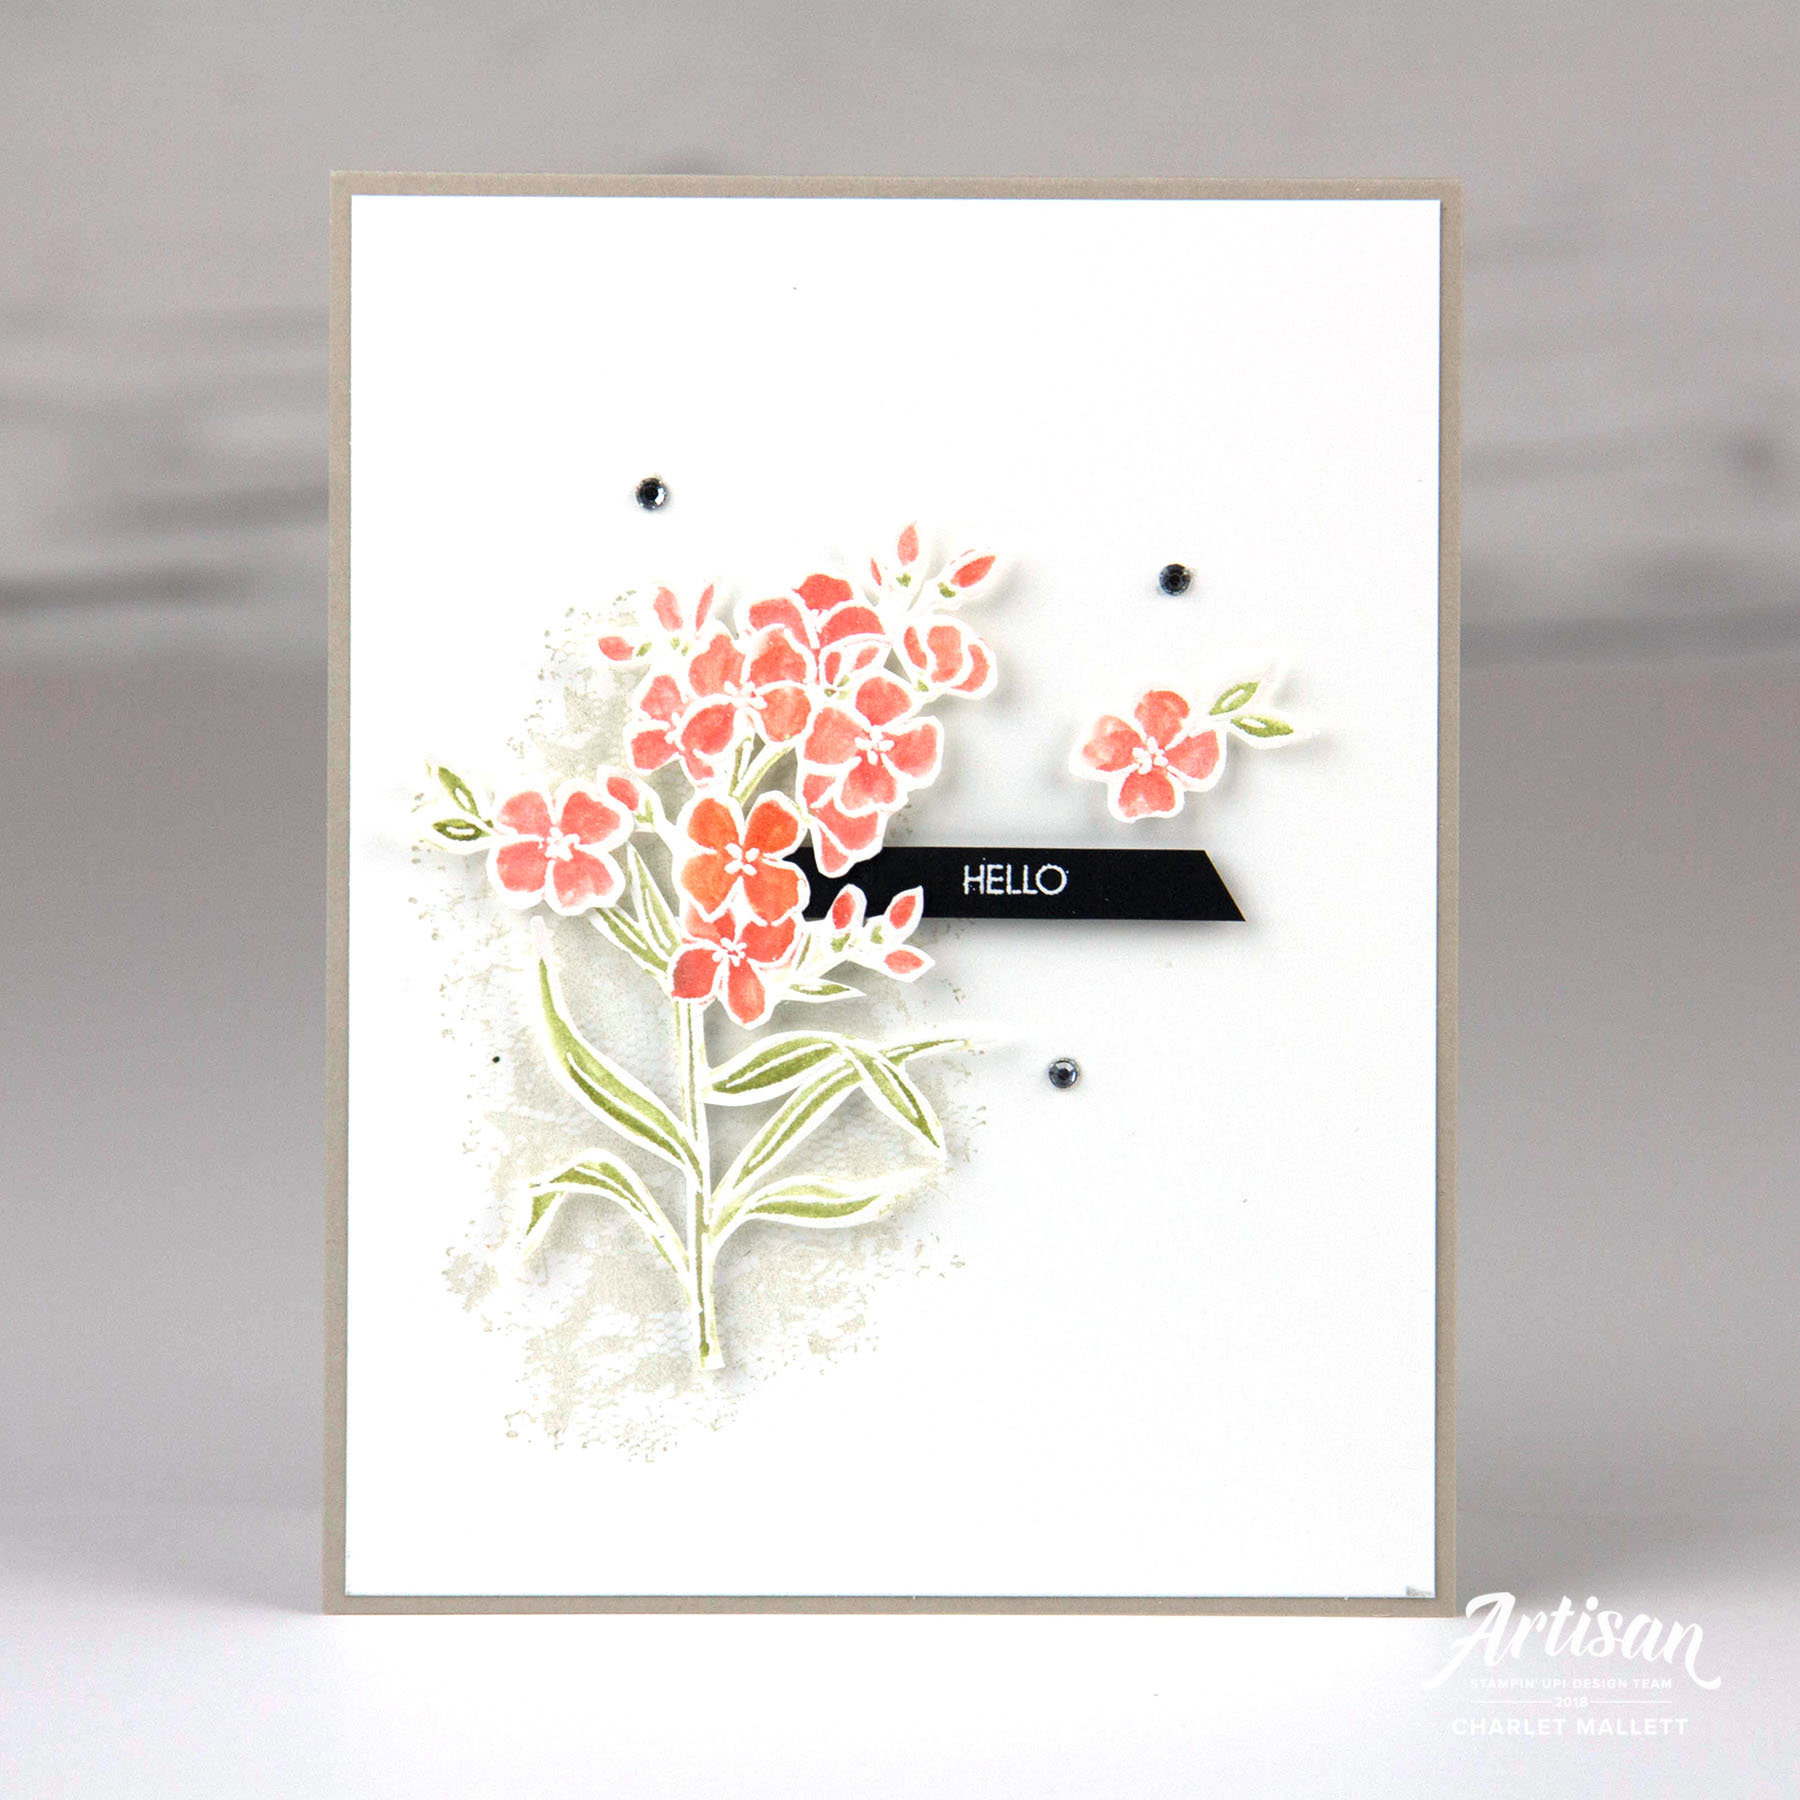 Hello Card using the Southern Serenade Stamp Set - Charlet Mallett, Stampin' Up!